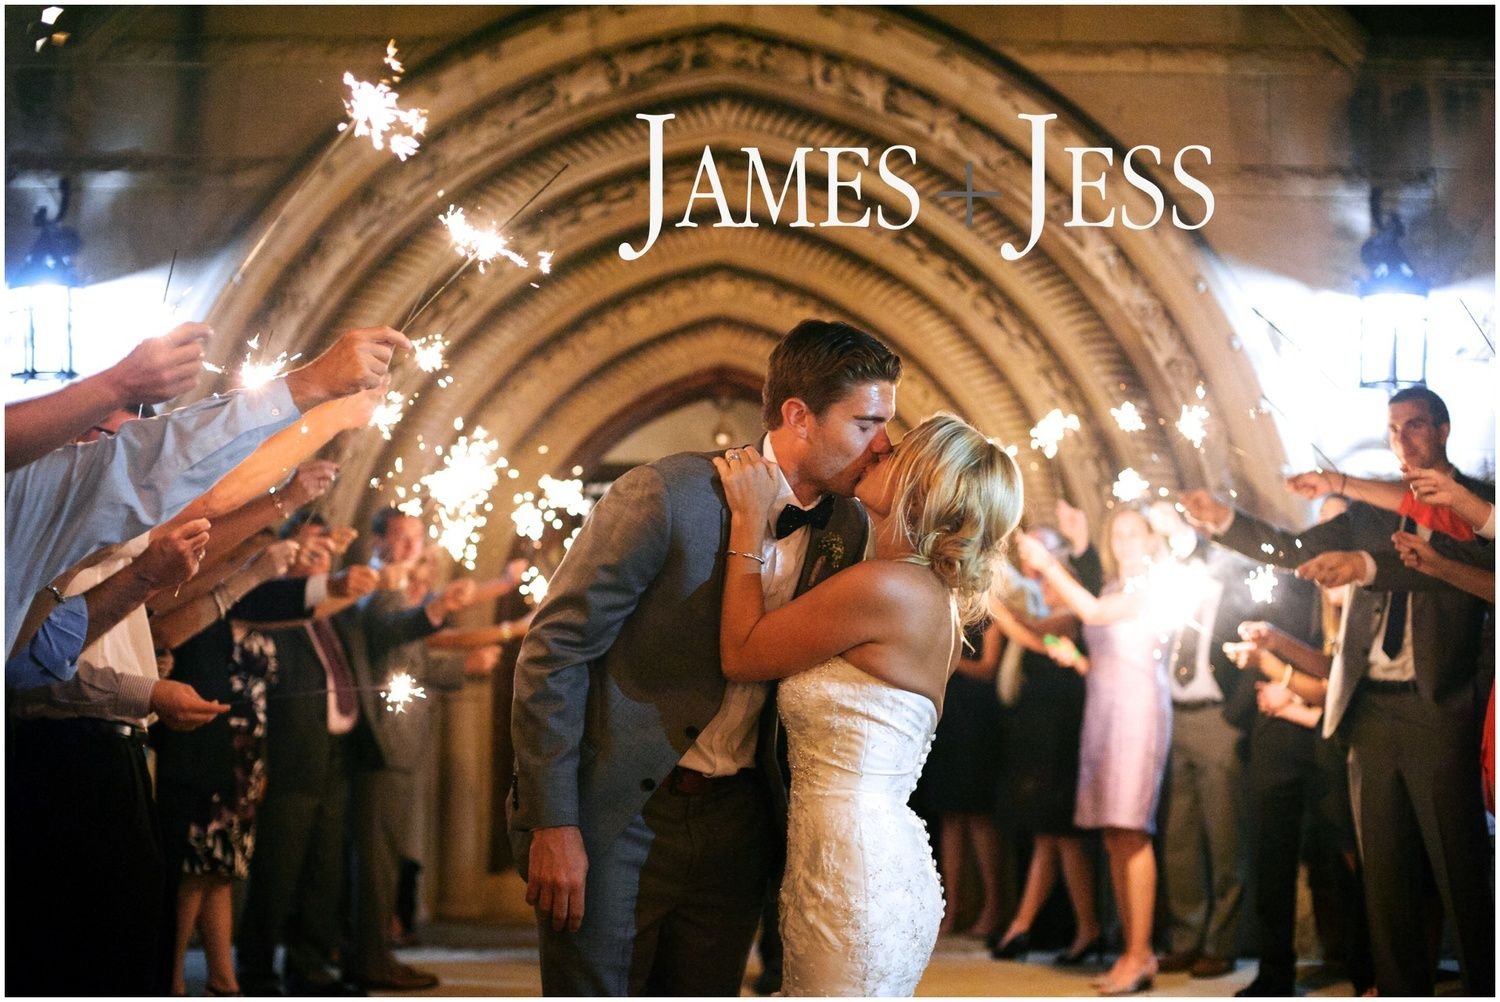 JessJames Wedding  Wedding Photographer L Full Frame - Country house at bluestone wedding